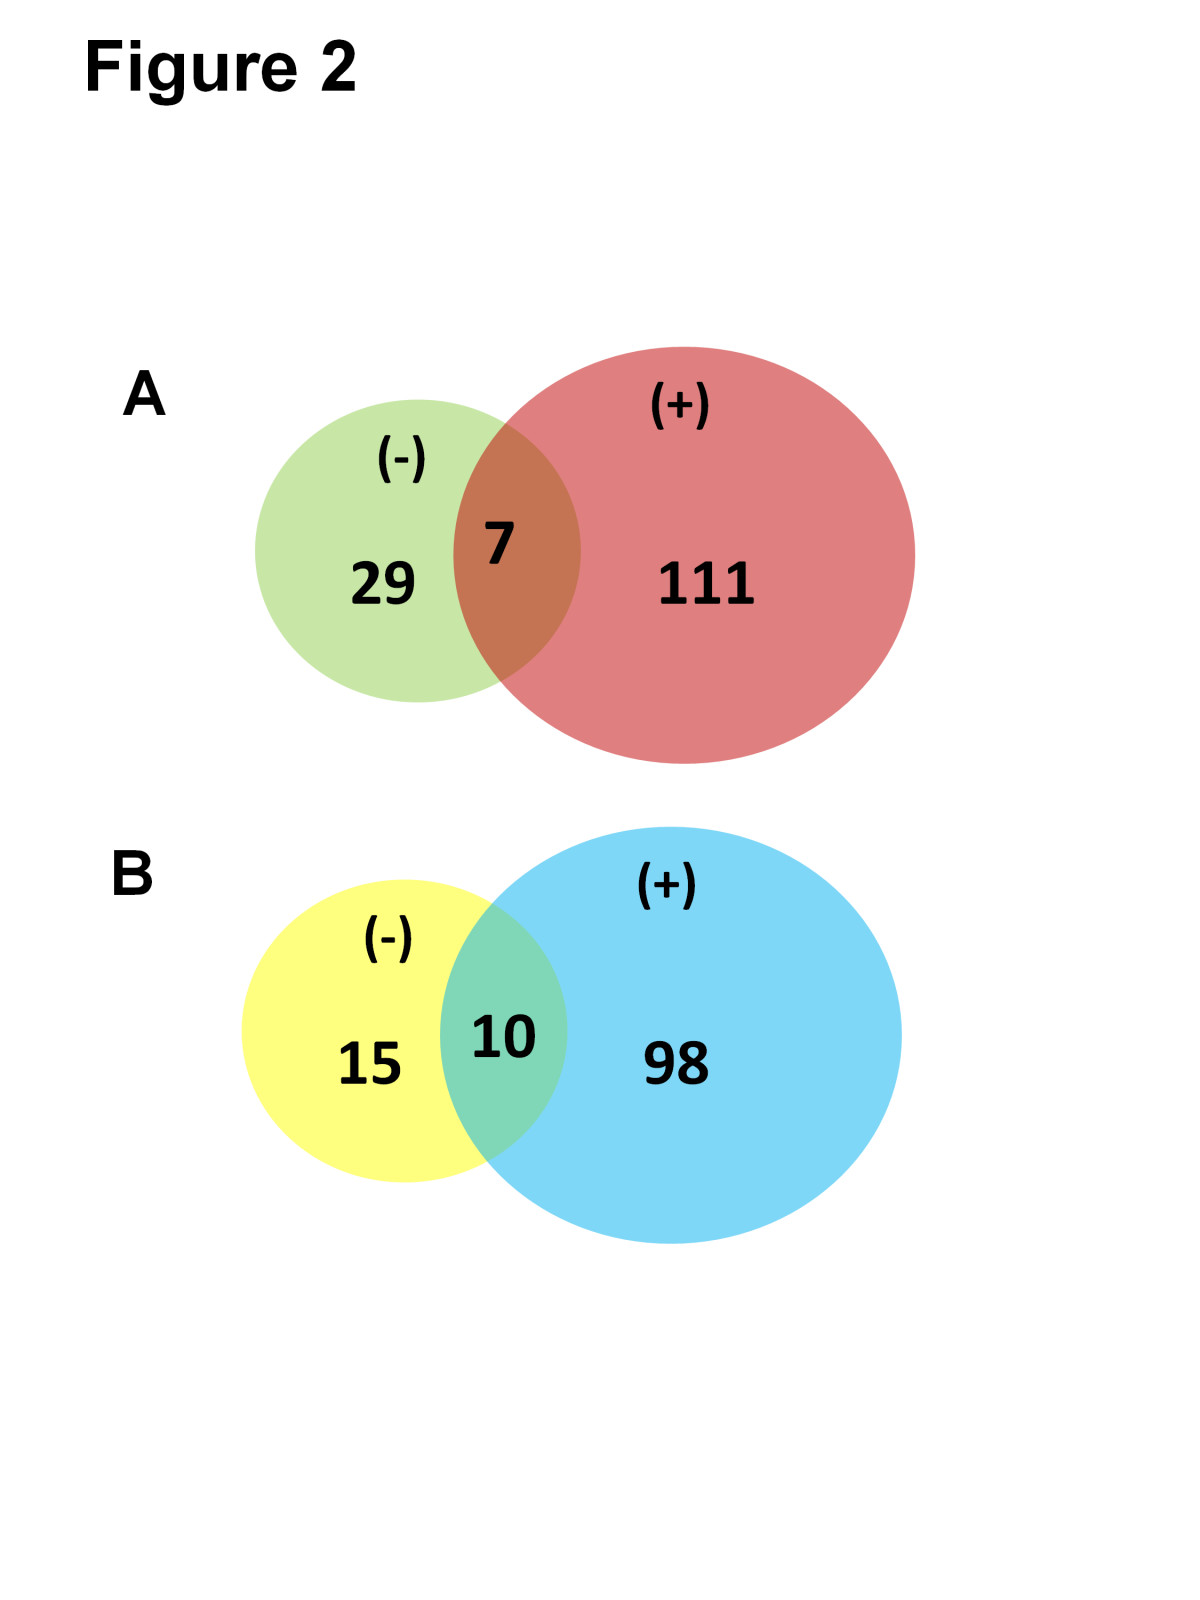 http://static-content.springer.com/image/art%3A10.1186%2F1477-5956-10-47/MediaObjects/12953_2012_Article_384_Fig2_HTML.jpg